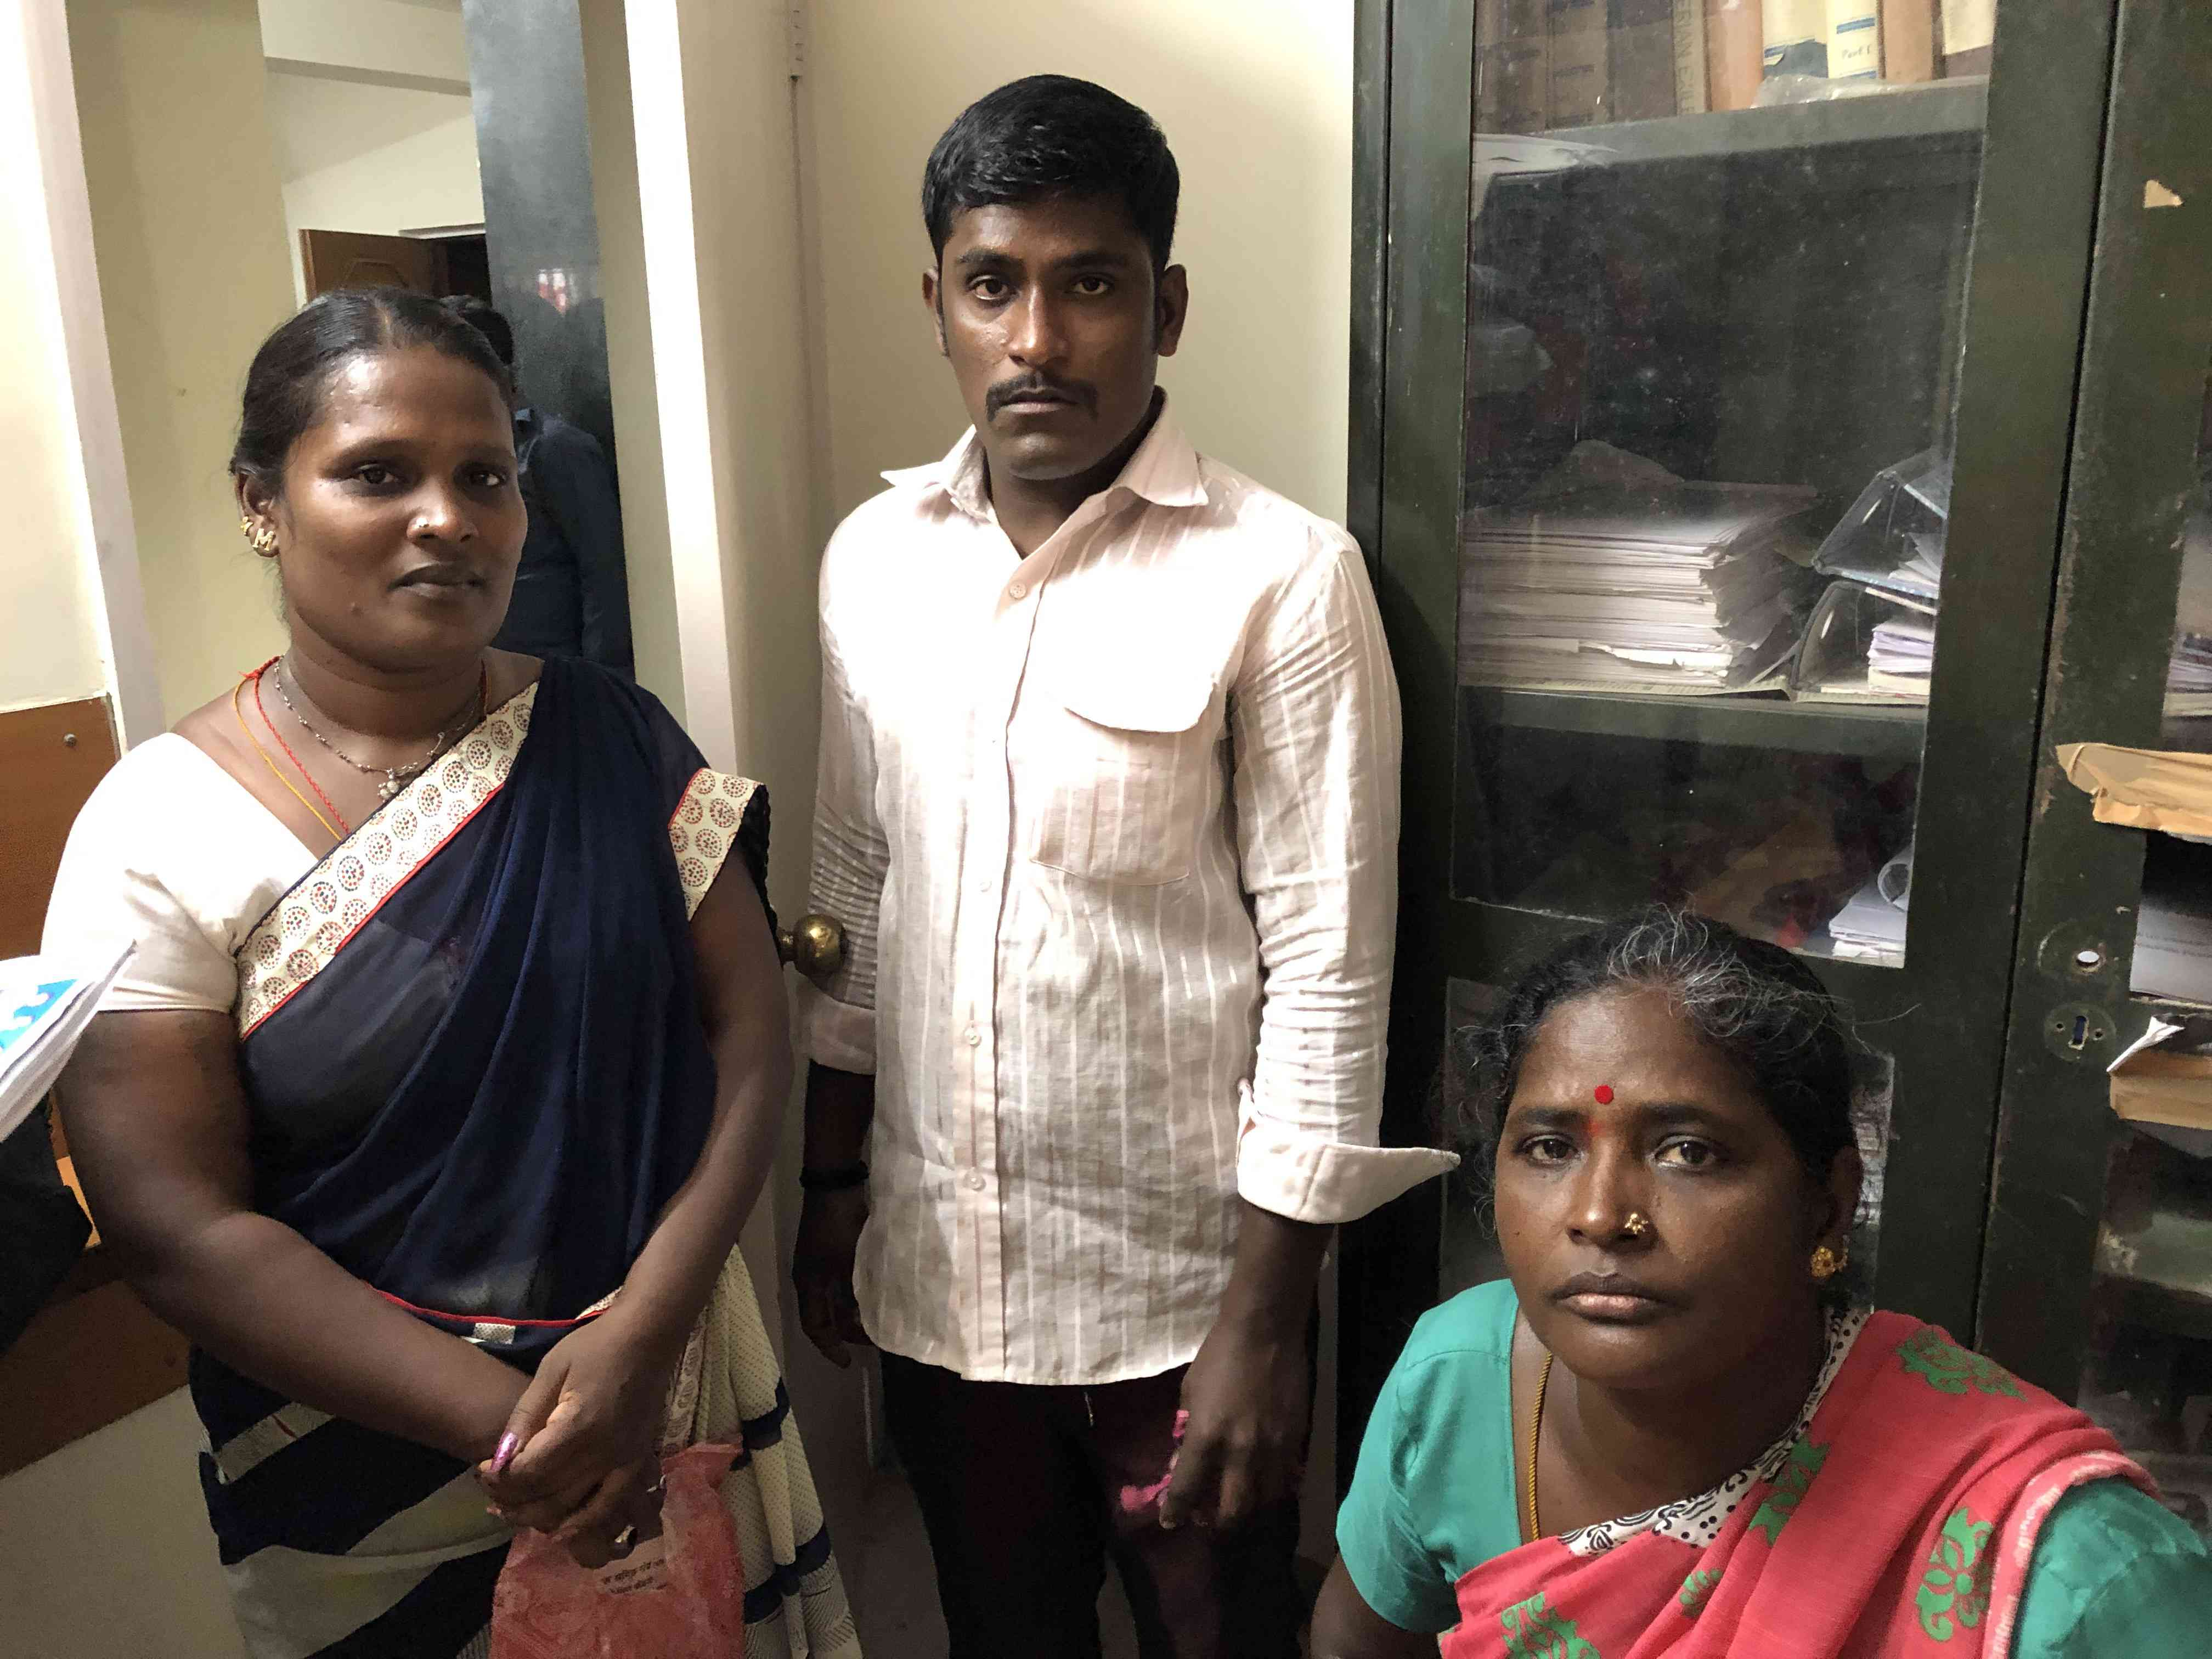 Sanitation workers Vijaya Murghan Perumal Somi (left) and Rane Rajudevendra (right) with a colleague at the Kachra Vahtuk Shramik Sangh union office in December. (Photo credit: Sujatha Fernandes).